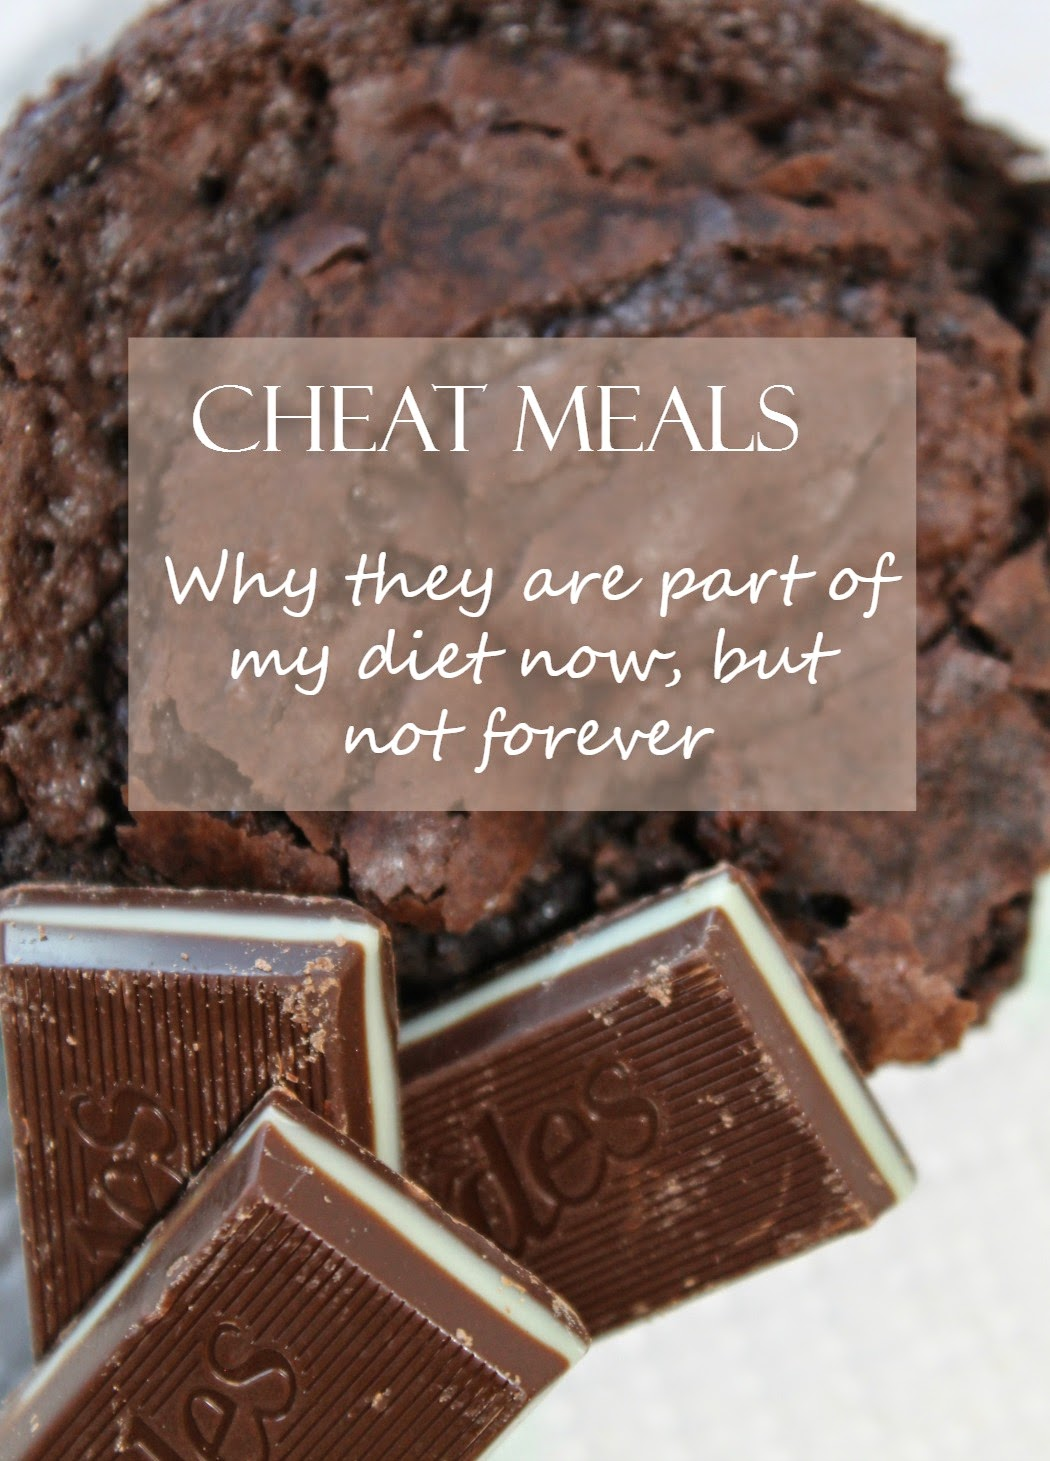 are cheat meals bad for you